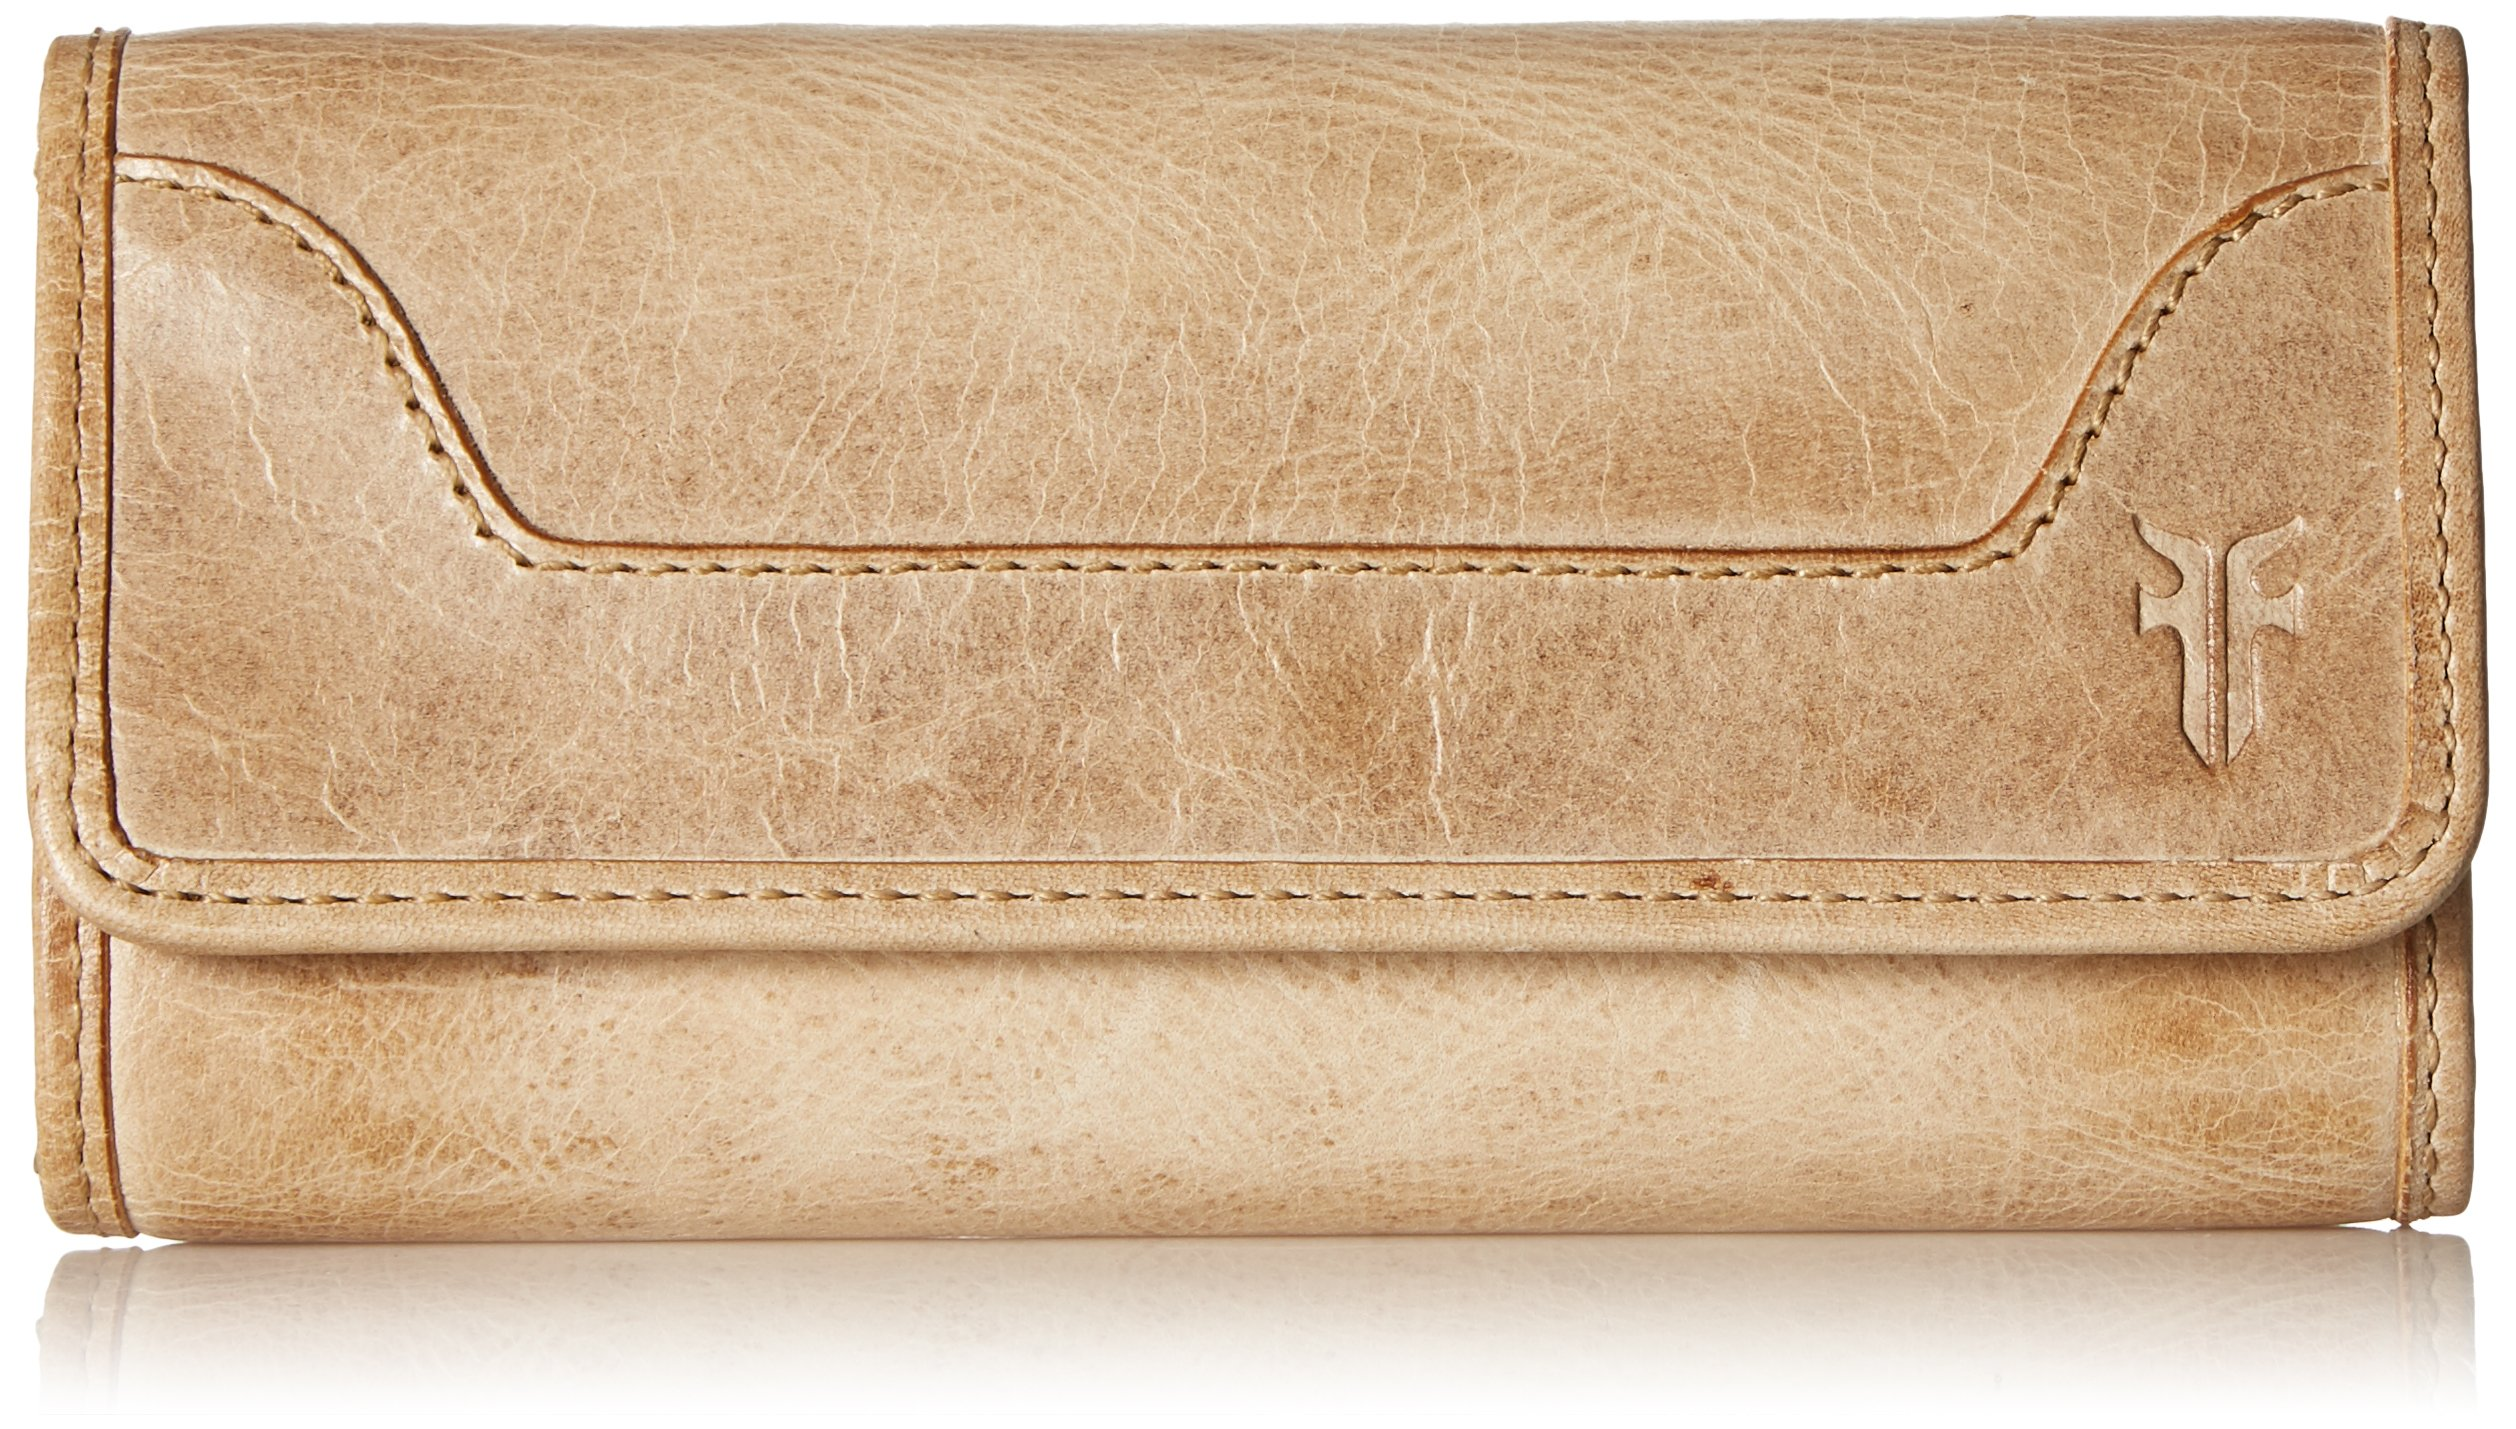 Melissa Continental Snap Leather Wallet Wallet, Sand, One Size